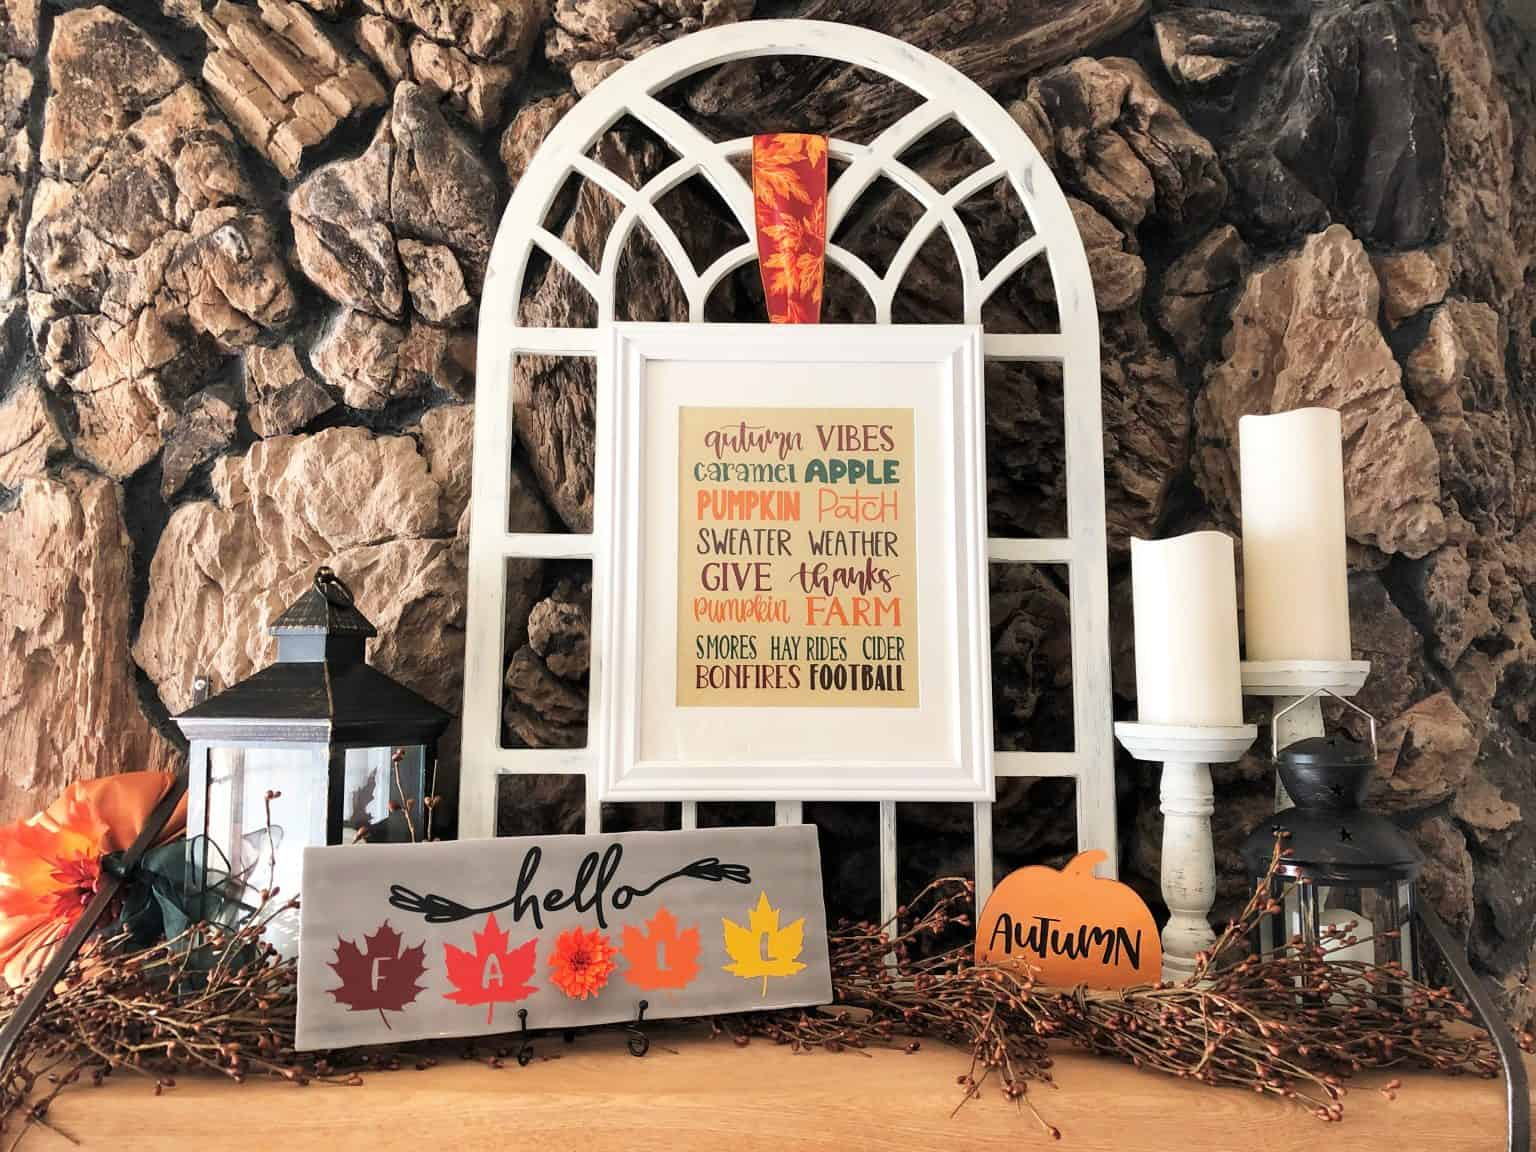 diy ceramic subway tile art on a fireplace mantle